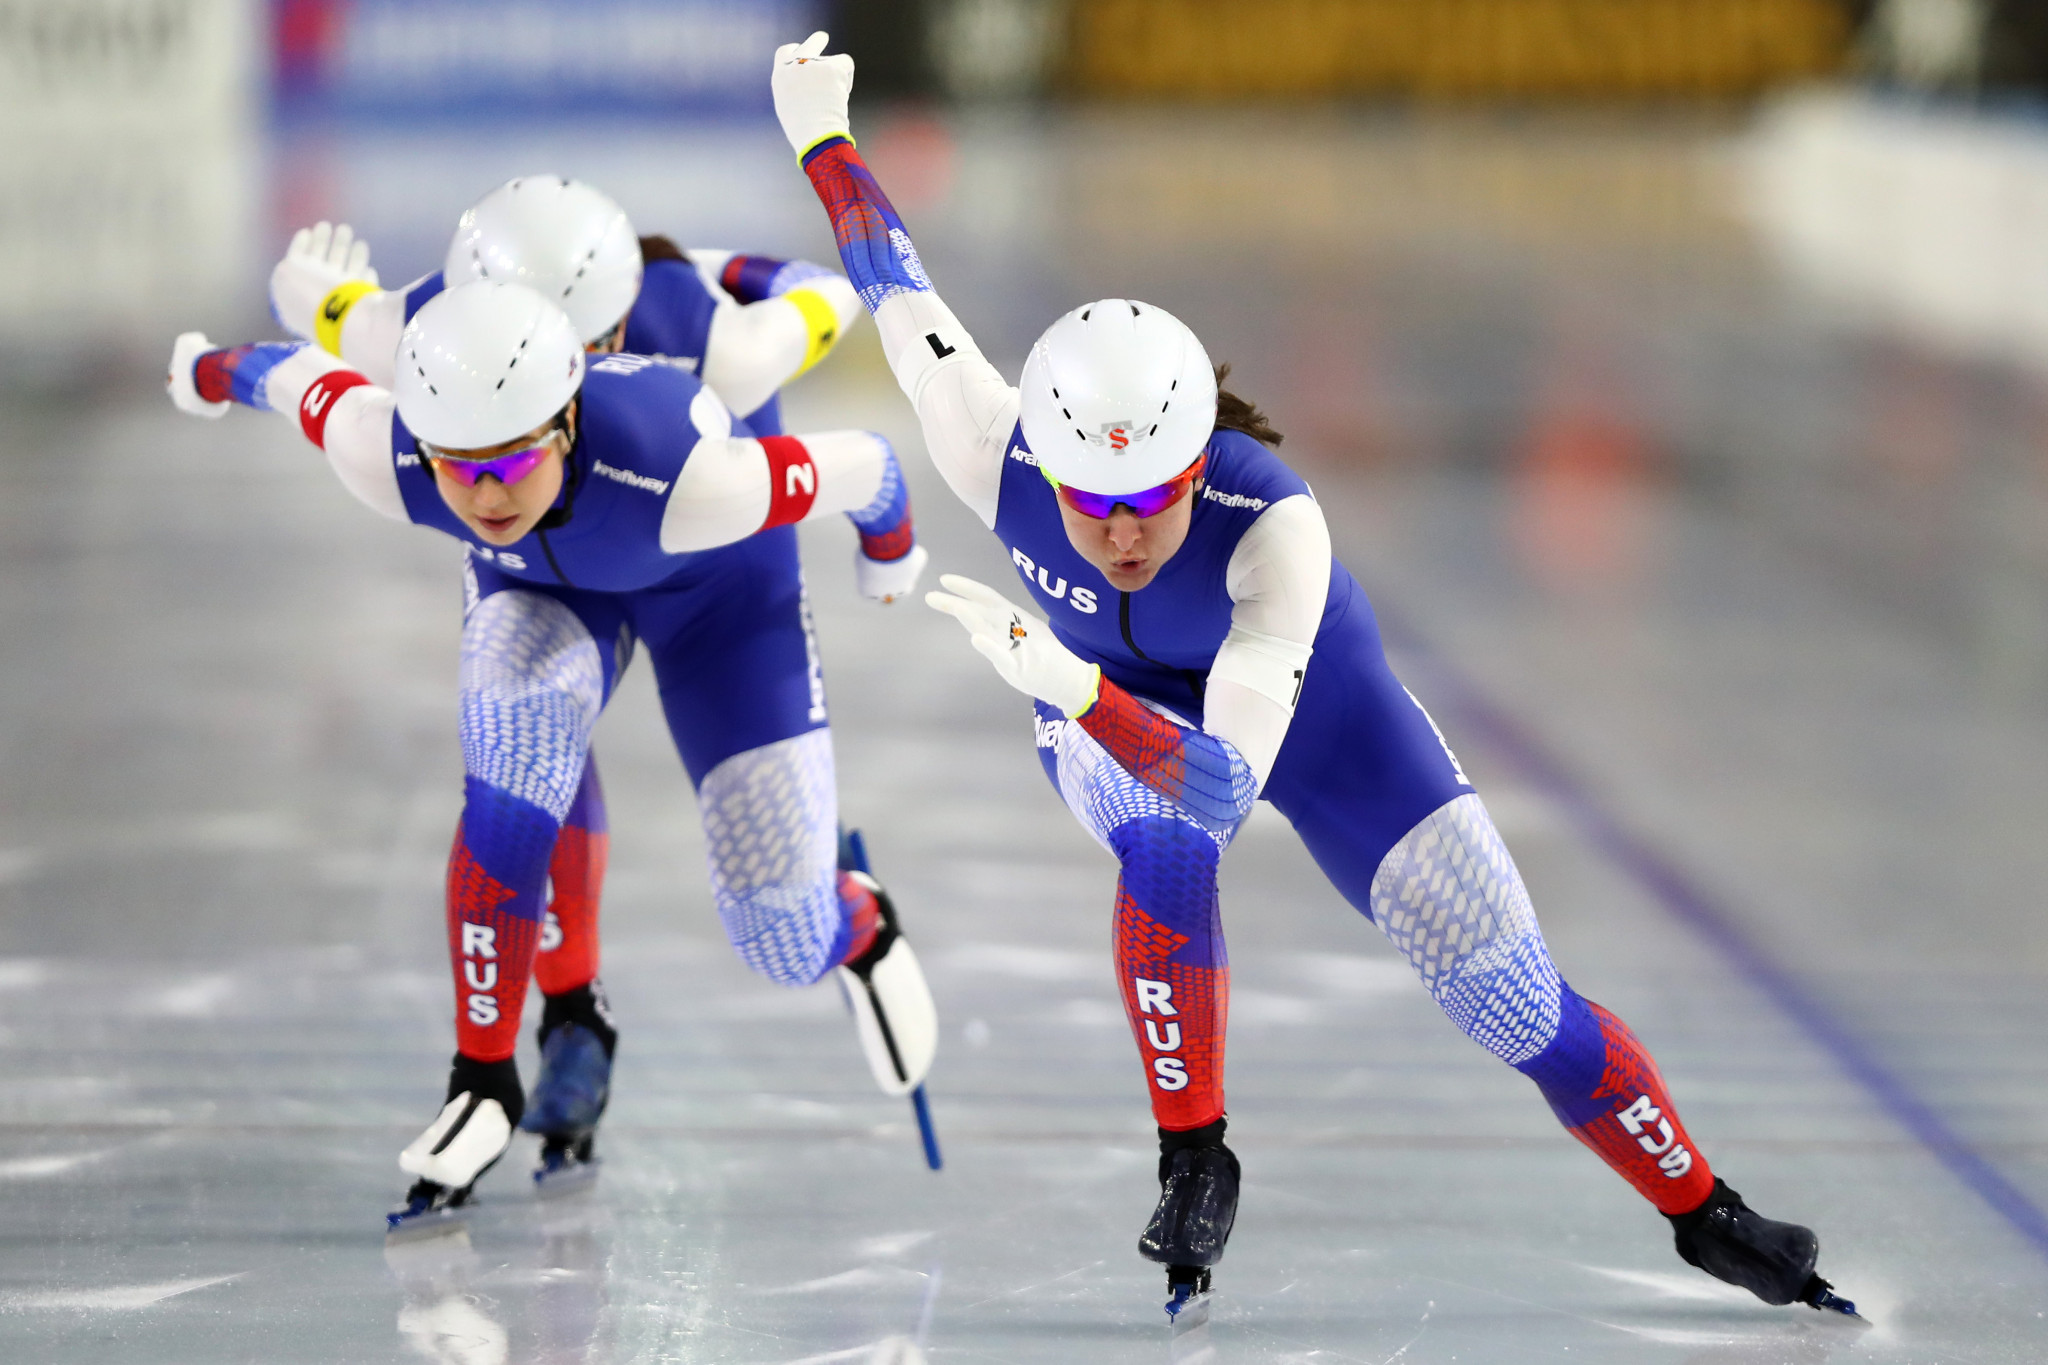 Russia and Netherlands earn another two gold medals each at ISU European Speed Skating Championships